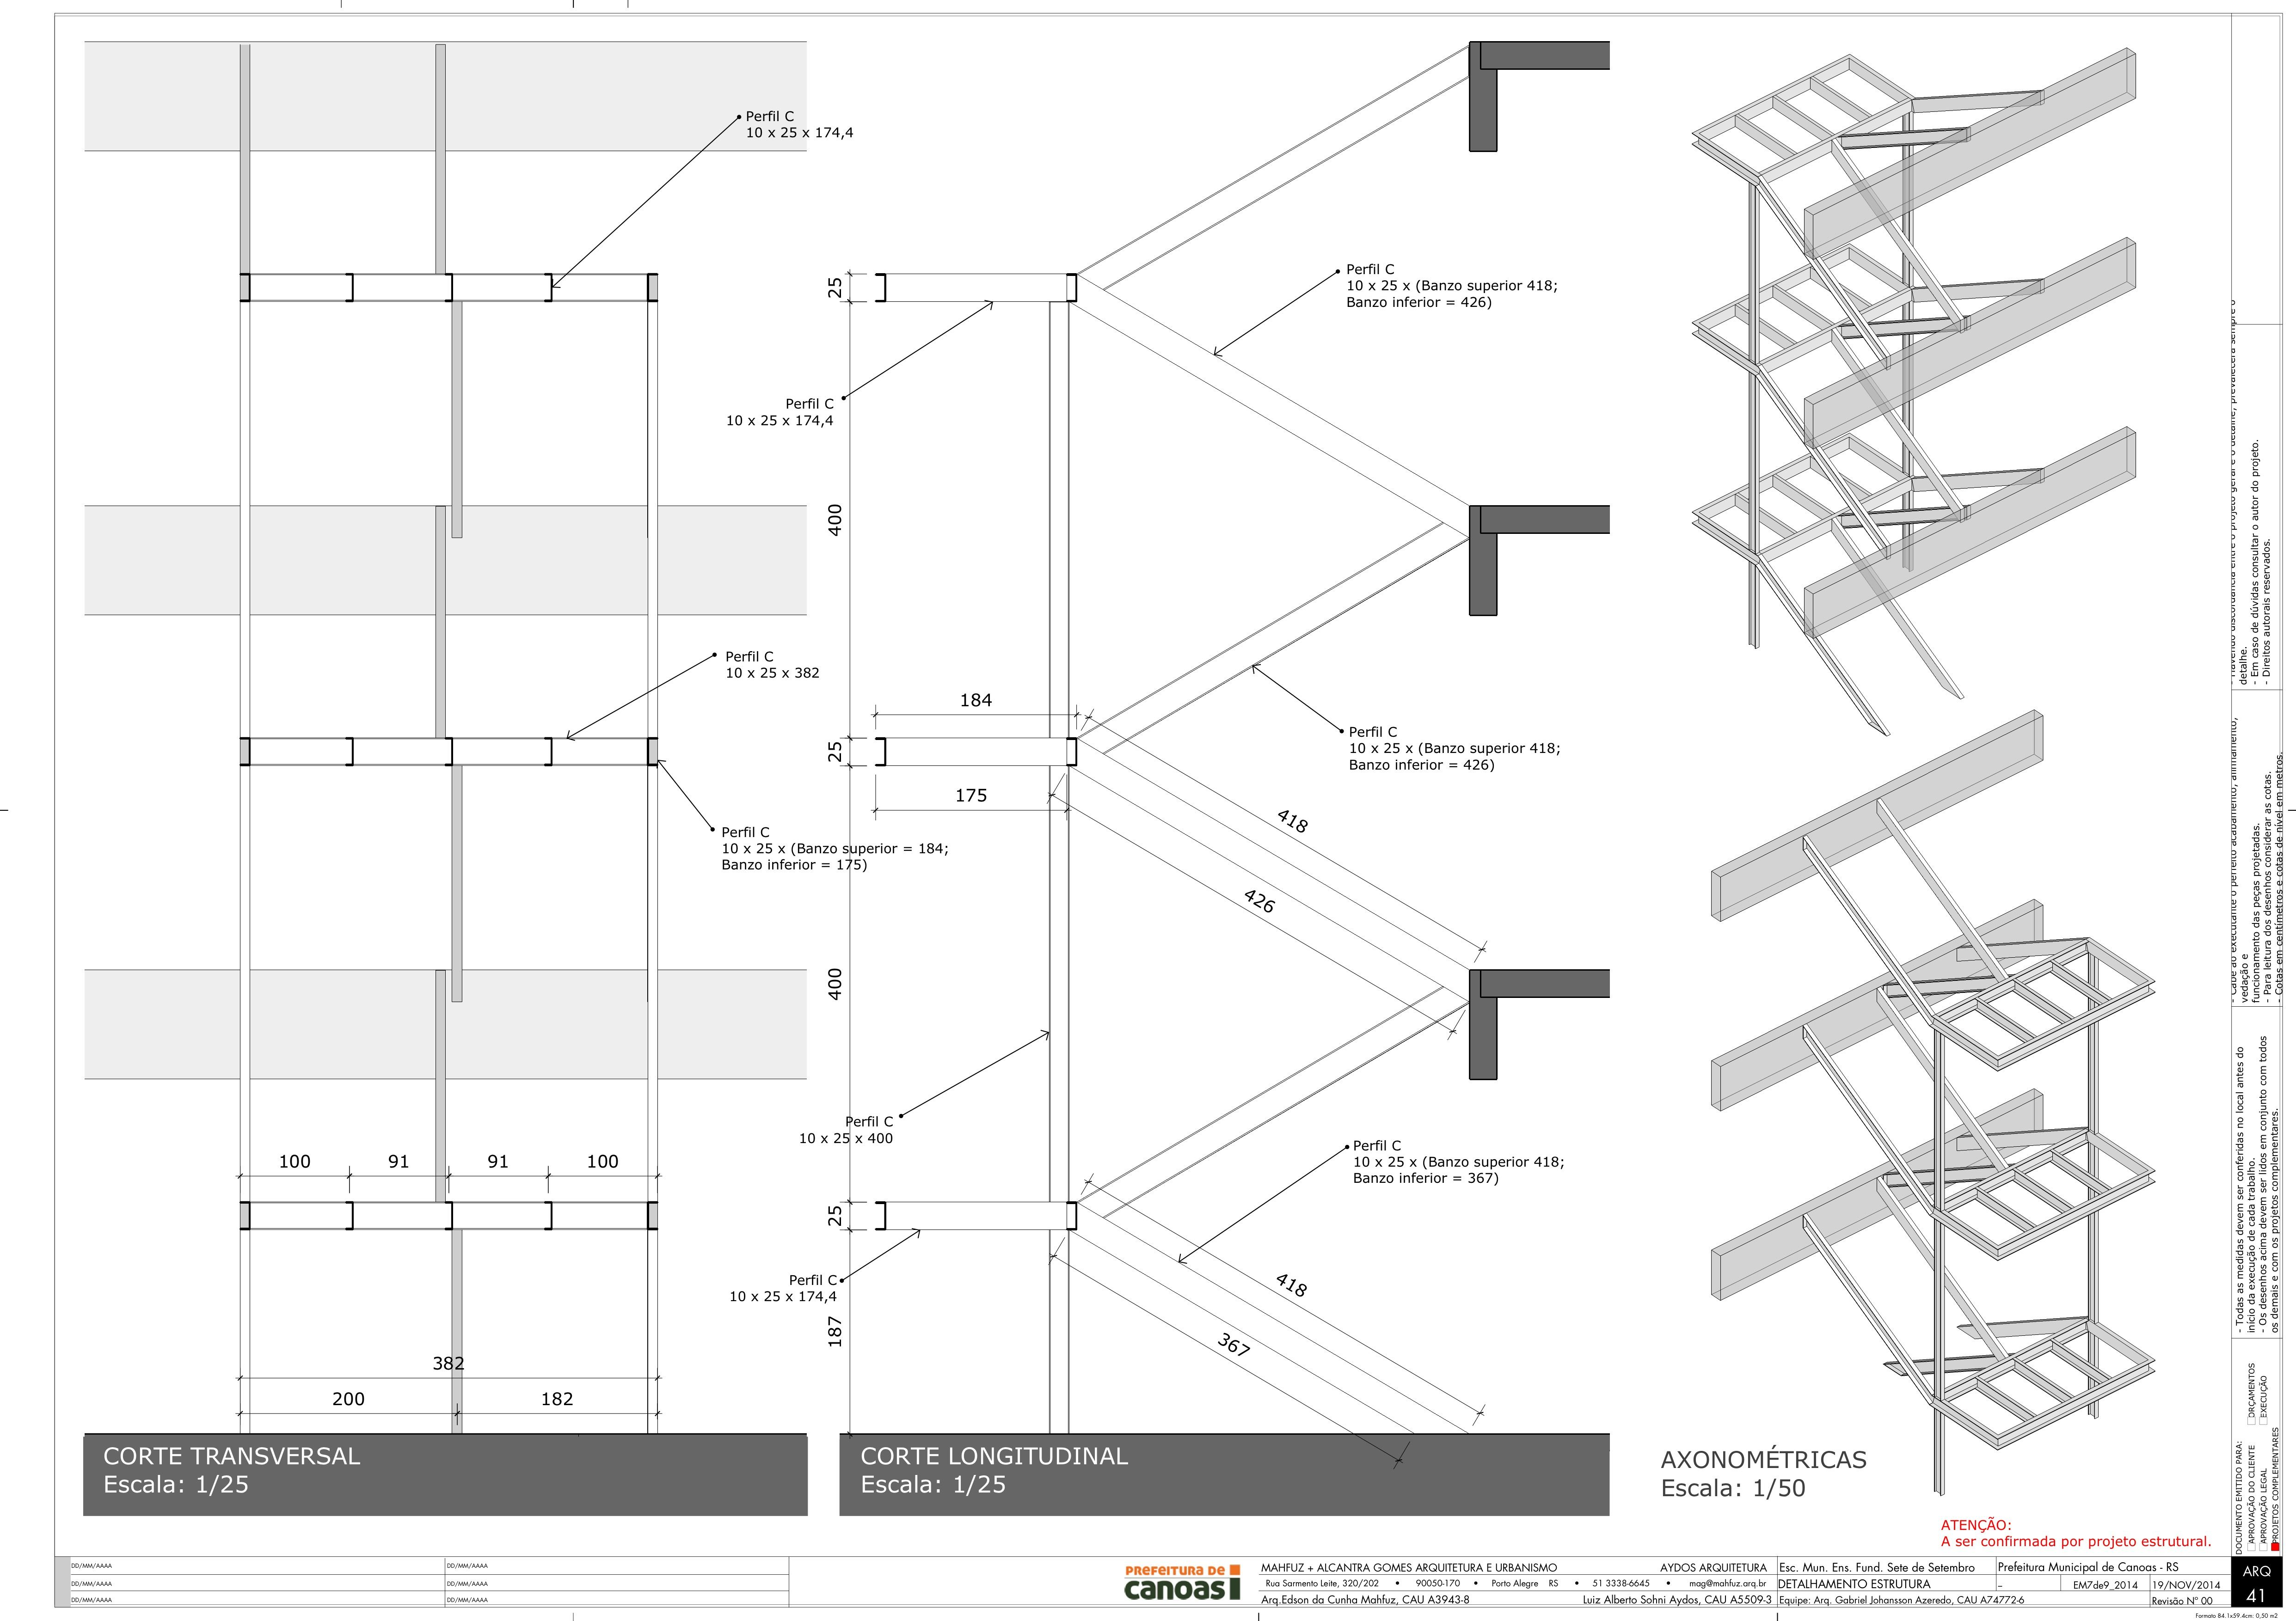 Sections created with Skalp for SketchUp. Project by Edson